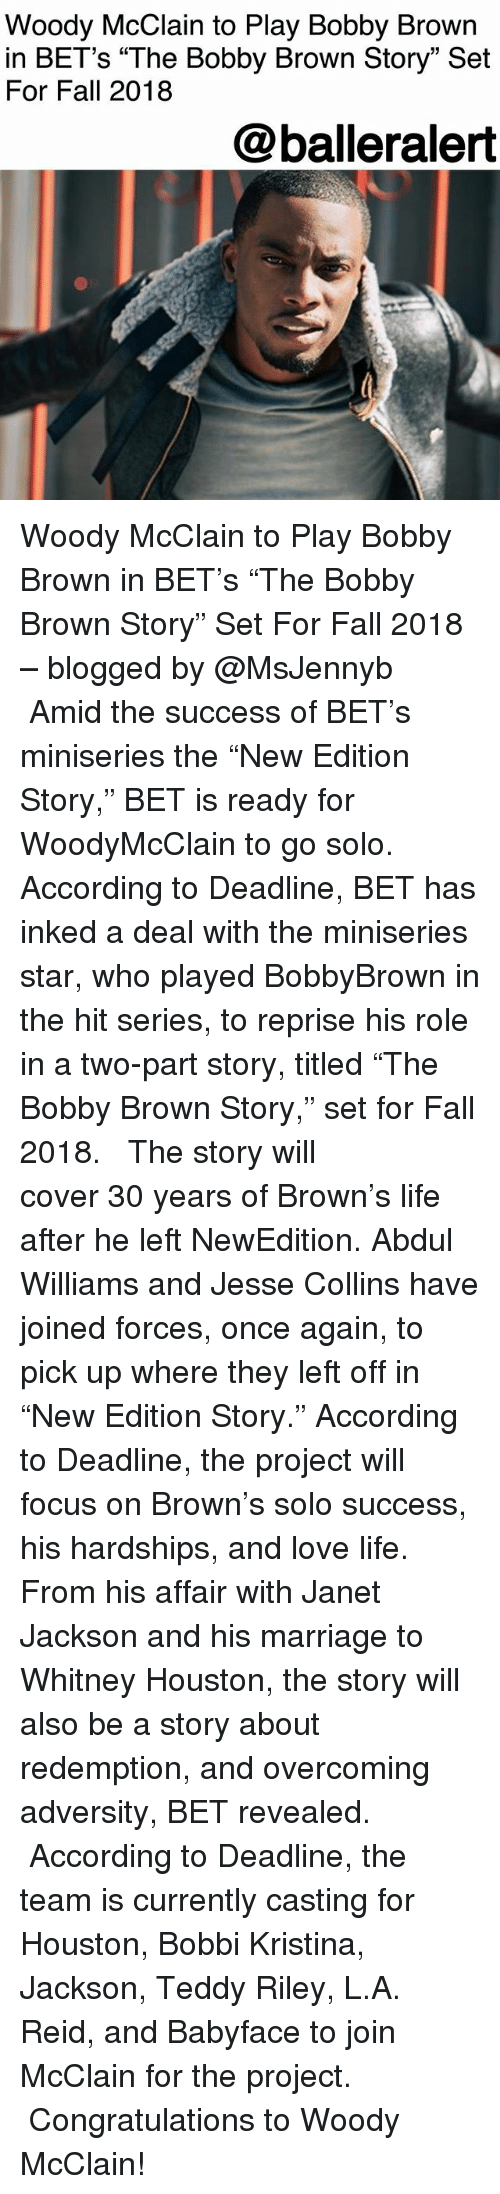 "whitney houston: Woody McClain to Play Bobby Brown  in BET's ""The Bobby Brown Story"" Set  For Fall 2018  @balleralert Woody McClain to Play Bobby Brown in BET's ""The Bobby Brown Story"" Set For Fall 2018 – blogged by @MsJennyb ⠀⠀⠀⠀⠀⠀⠀ ⠀⠀⠀⠀⠀⠀⠀ Amid the success of BET's miniseries the ""New Edition Story,"" BET is ready for WoodyMcClain to go solo. According to Deadline, BET has inked a deal with the miniseries star, who played BobbyBrown in the hit series, to reprise his role in a two-part story, titled ""The Bobby Brown Story,"" set for Fall 2018. ⠀⠀⠀⠀⠀⠀⠀ ⠀⠀⠀⠀⠀⠀⠀ The story will cover 30 years of Brown's life after he left NewEdition. Abdul Williams and Jesse Collins have joined forces, once again, to pick up where they left off in ""New Edition Story."" According to Deadline, the project will focus on Brown's solo success, his hardships, and love life. From his affair with Janet Jackson and his marriage to Whitney Houston, the story will also be a story about redemption, and overcoming adversity, BET revealed. ⠀⠀⠀⠀⠀⠀⠀ ⠀⠀⠀⠀⠀⠀⠀ According to Deadline, the team is currently casting for Houston, Bobbi Kristina, Jackson, Teddy Riley, L.A. Reid, and Babyface to join McClain for the project. ⠀⠀⠀⠀⠀⠀⠀ ⠀⠀⠀⠀⠀⠀⠀ Congratulations to Woody McClain!"